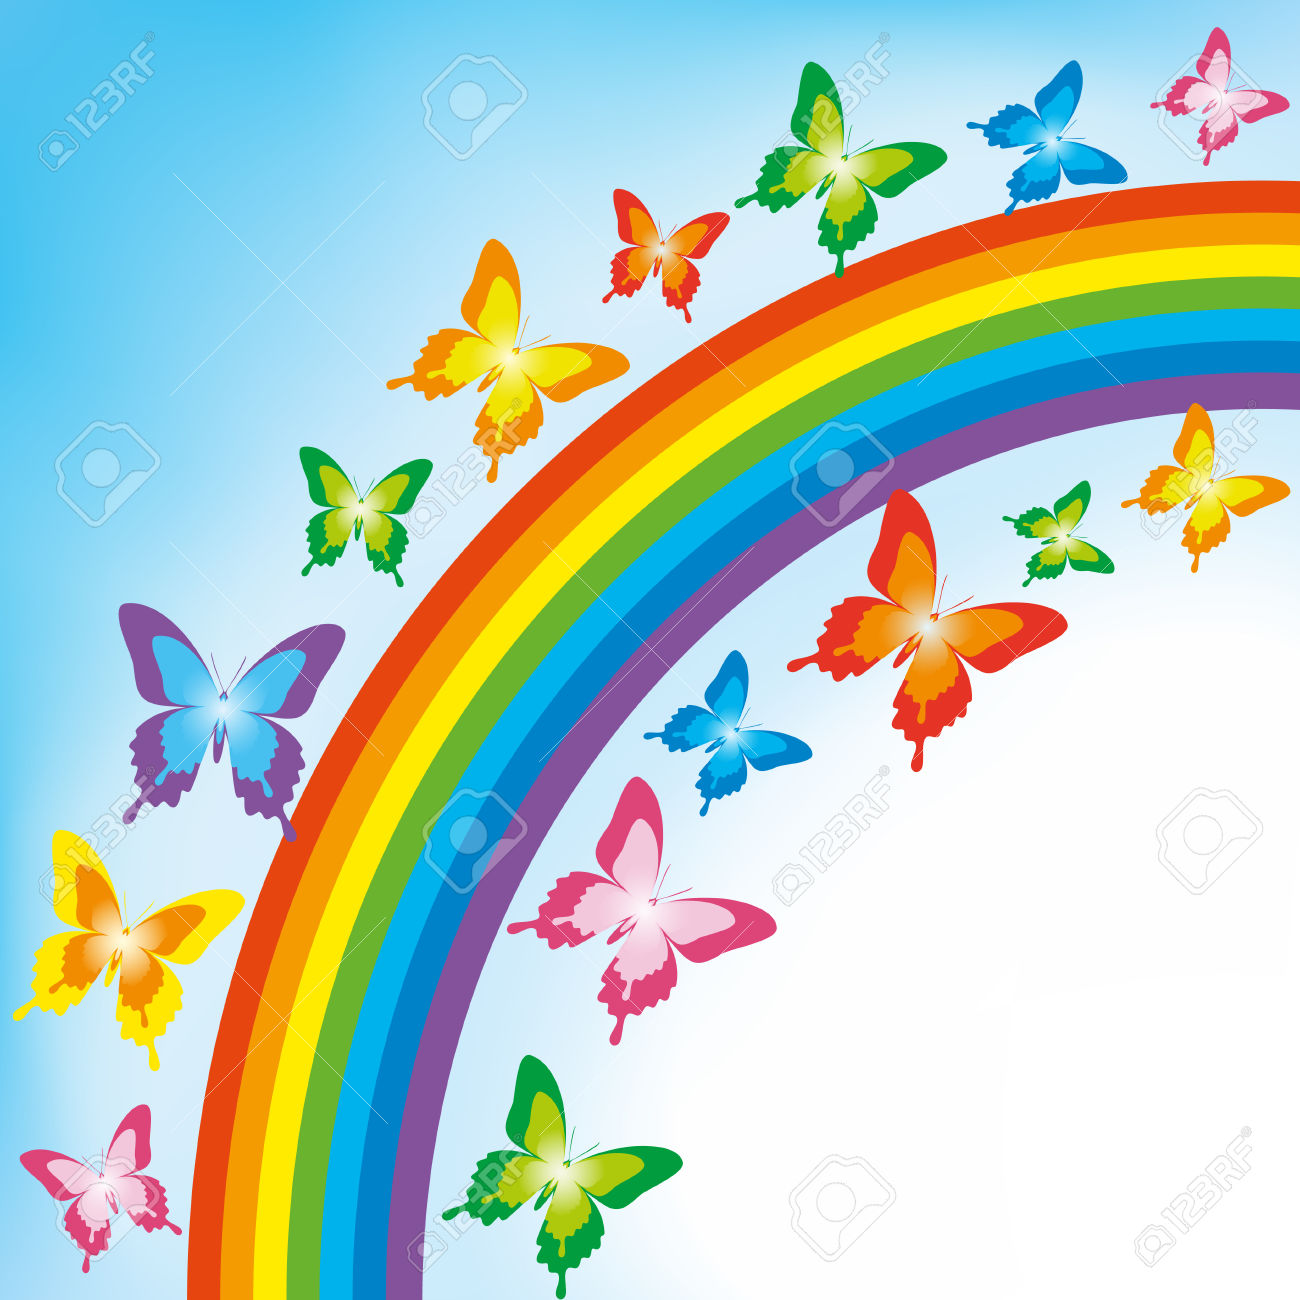 Rainbow Butterfly clipart #13, Download drawings